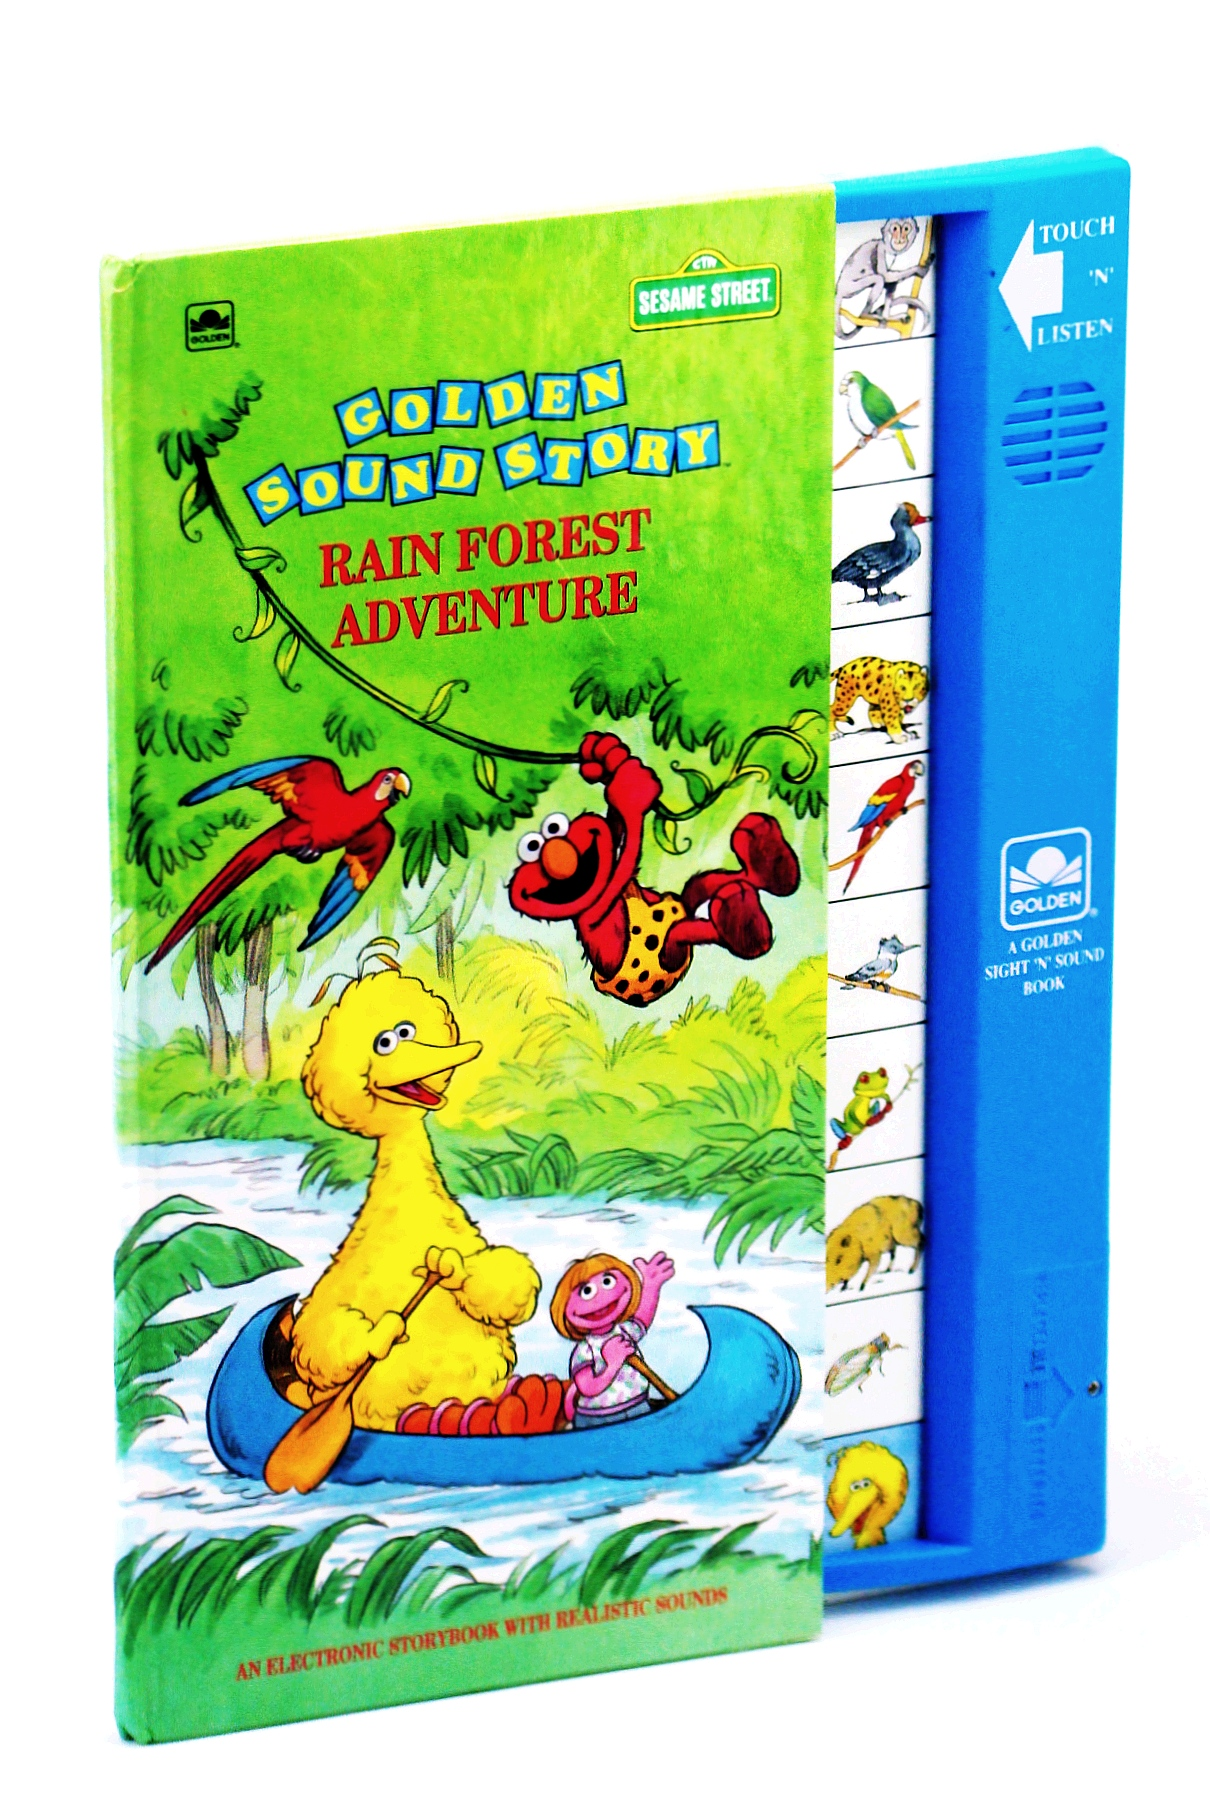 Image for Rain Forest Adventure (Sesame Street Golden Sound Story)